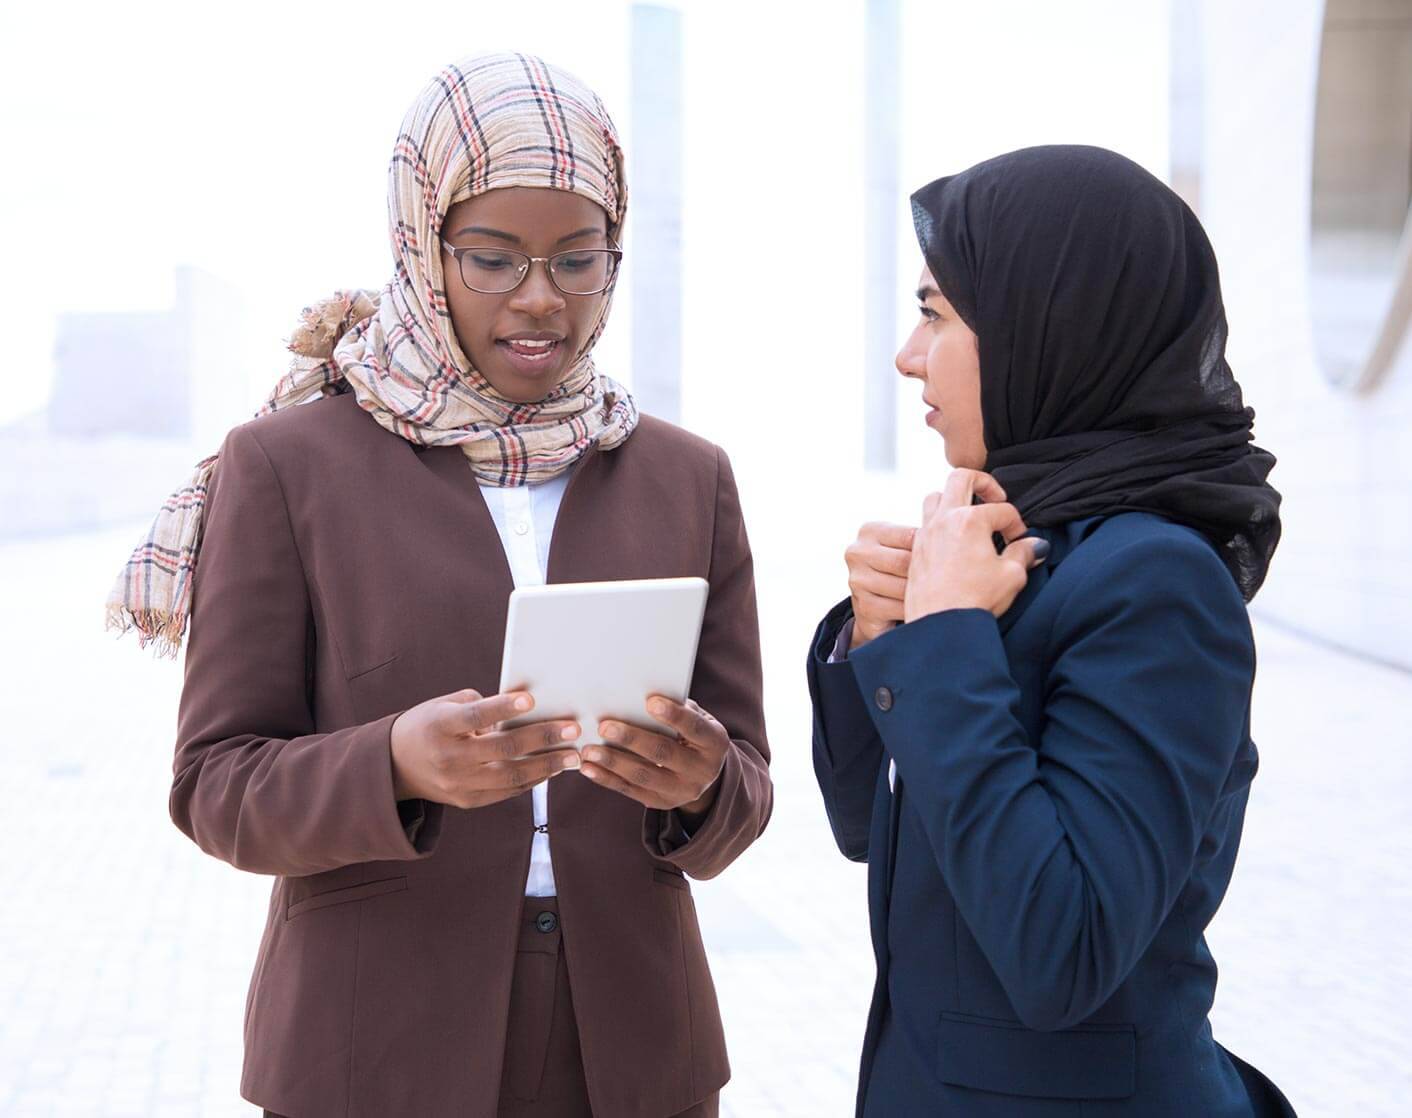 two women in head scarves talking while looking at mobile phone